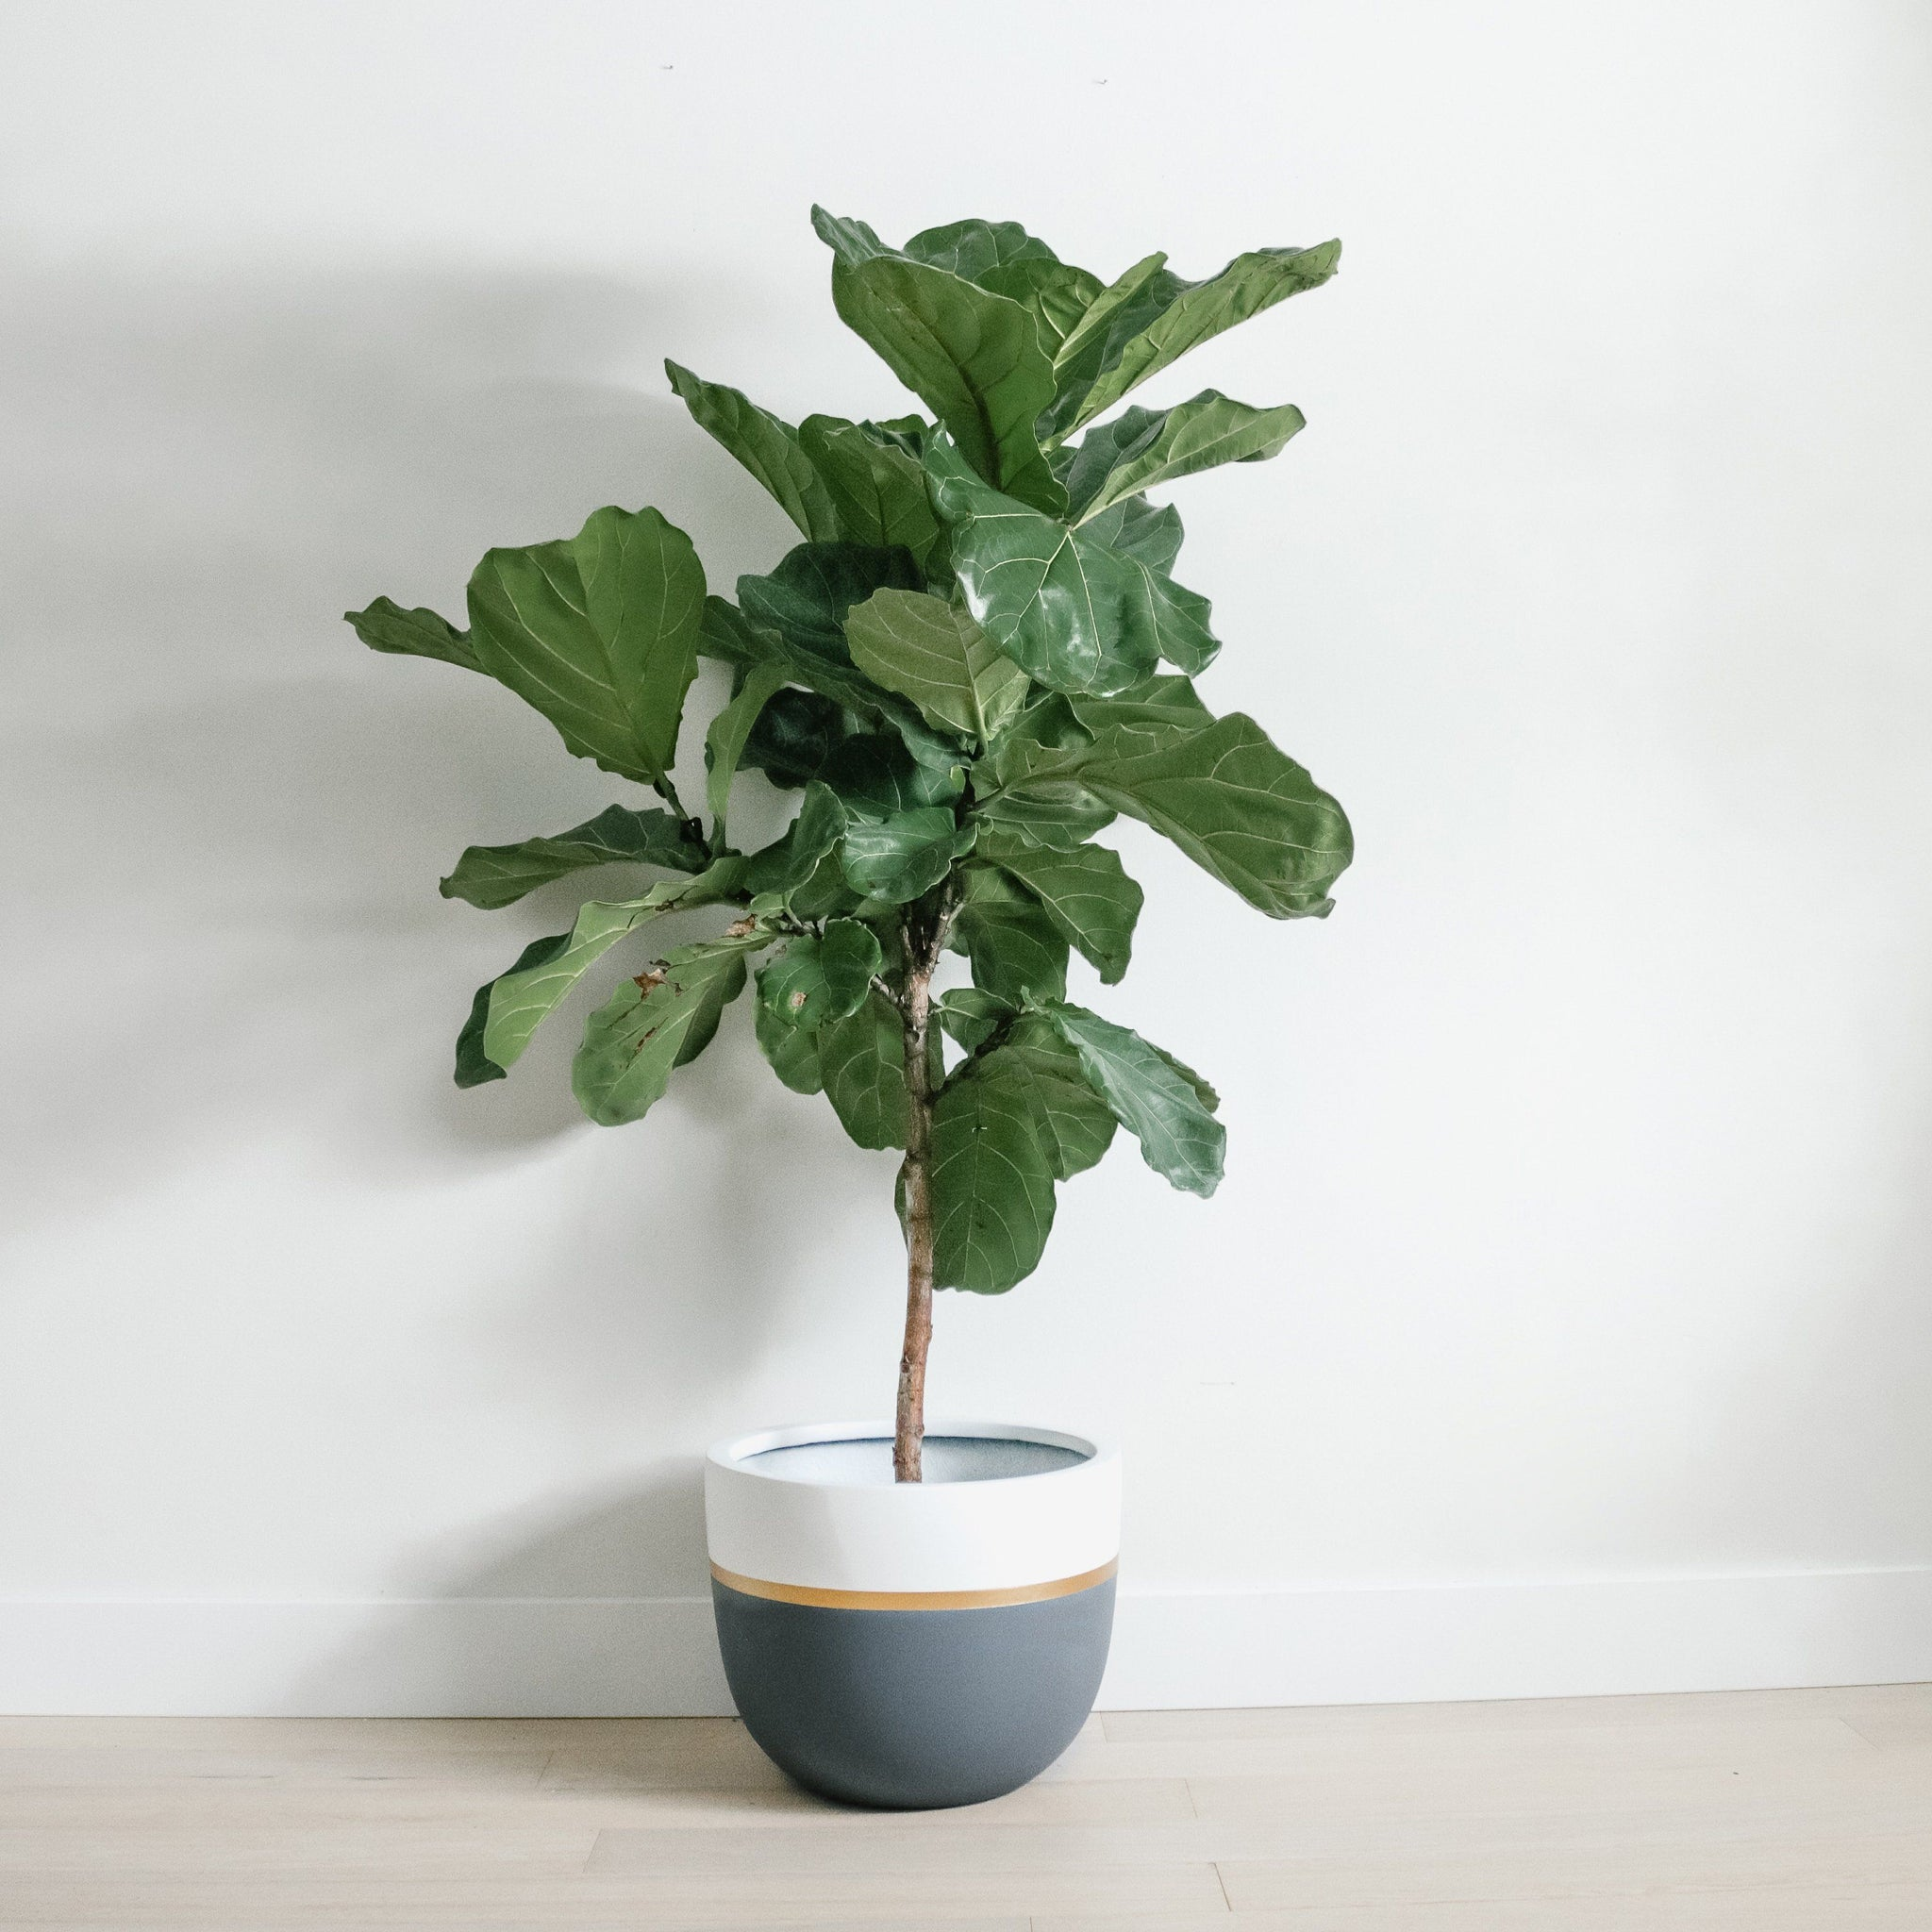 'queen b' - Grey White + Gold Planter Planters Hudson + Oak SML 11L x 11W x9H inches Indoor (no drainage holes)